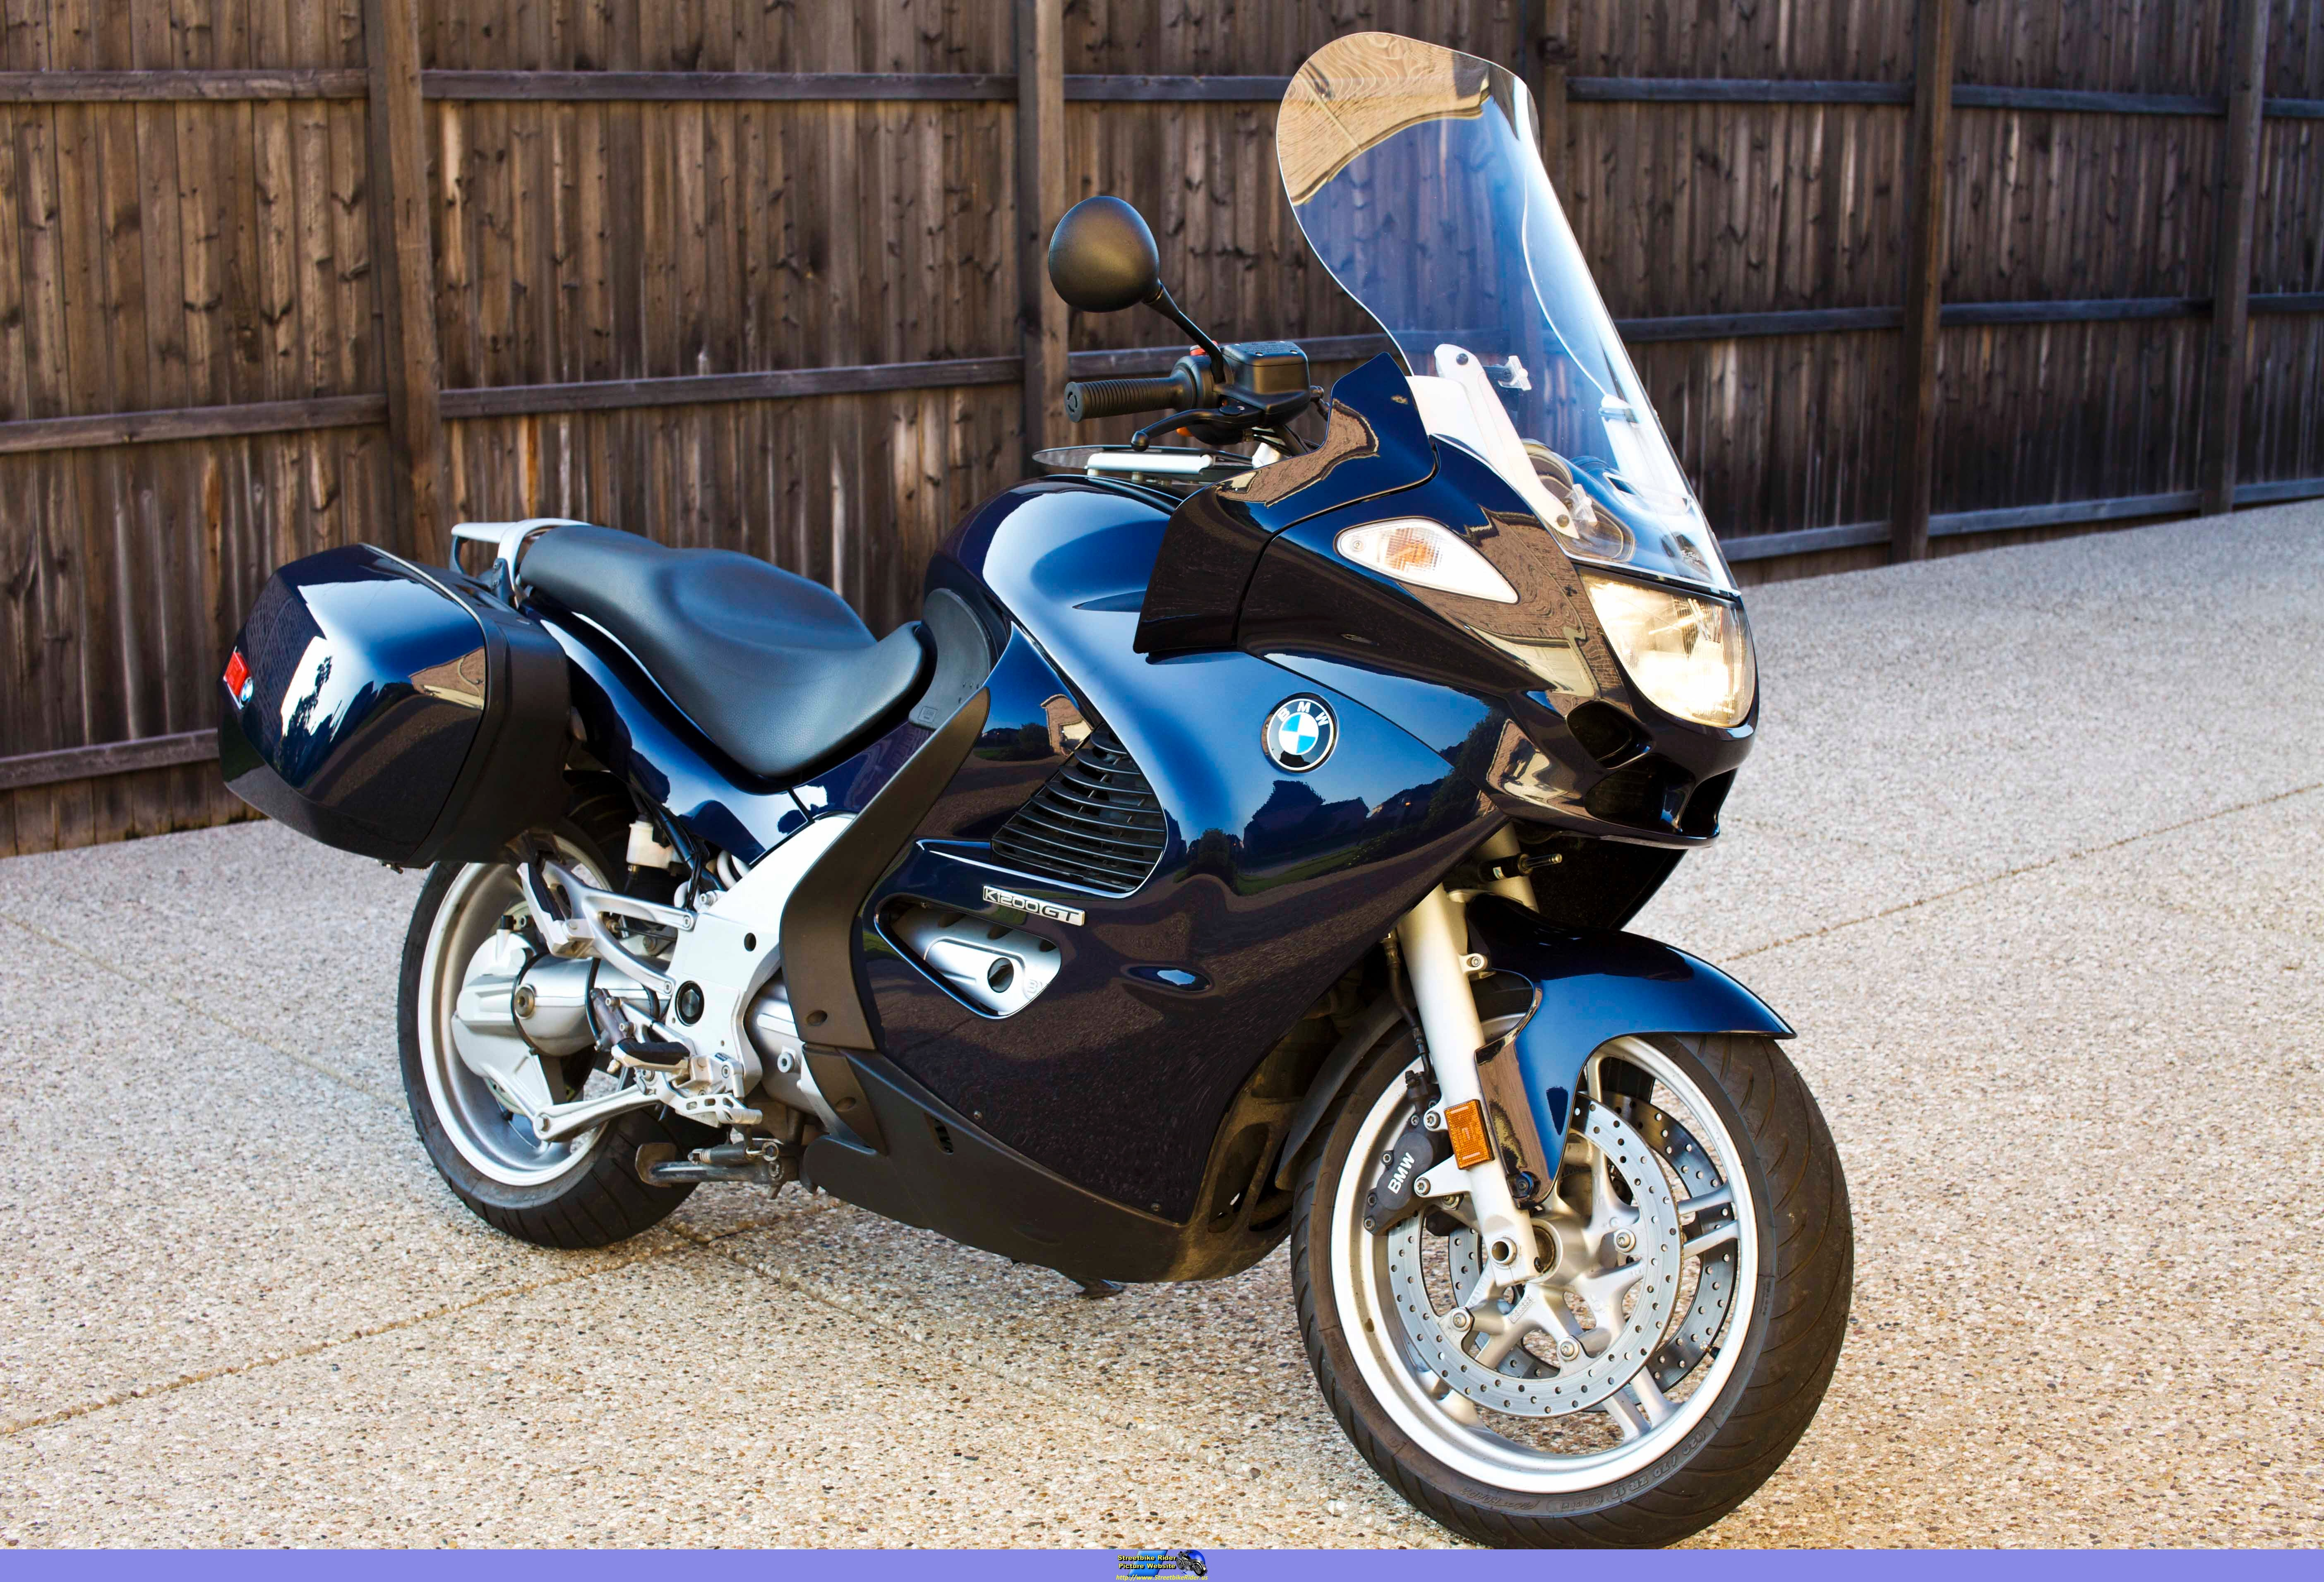 2006 BMW K1200GT Parts and Accessories  amazoncom